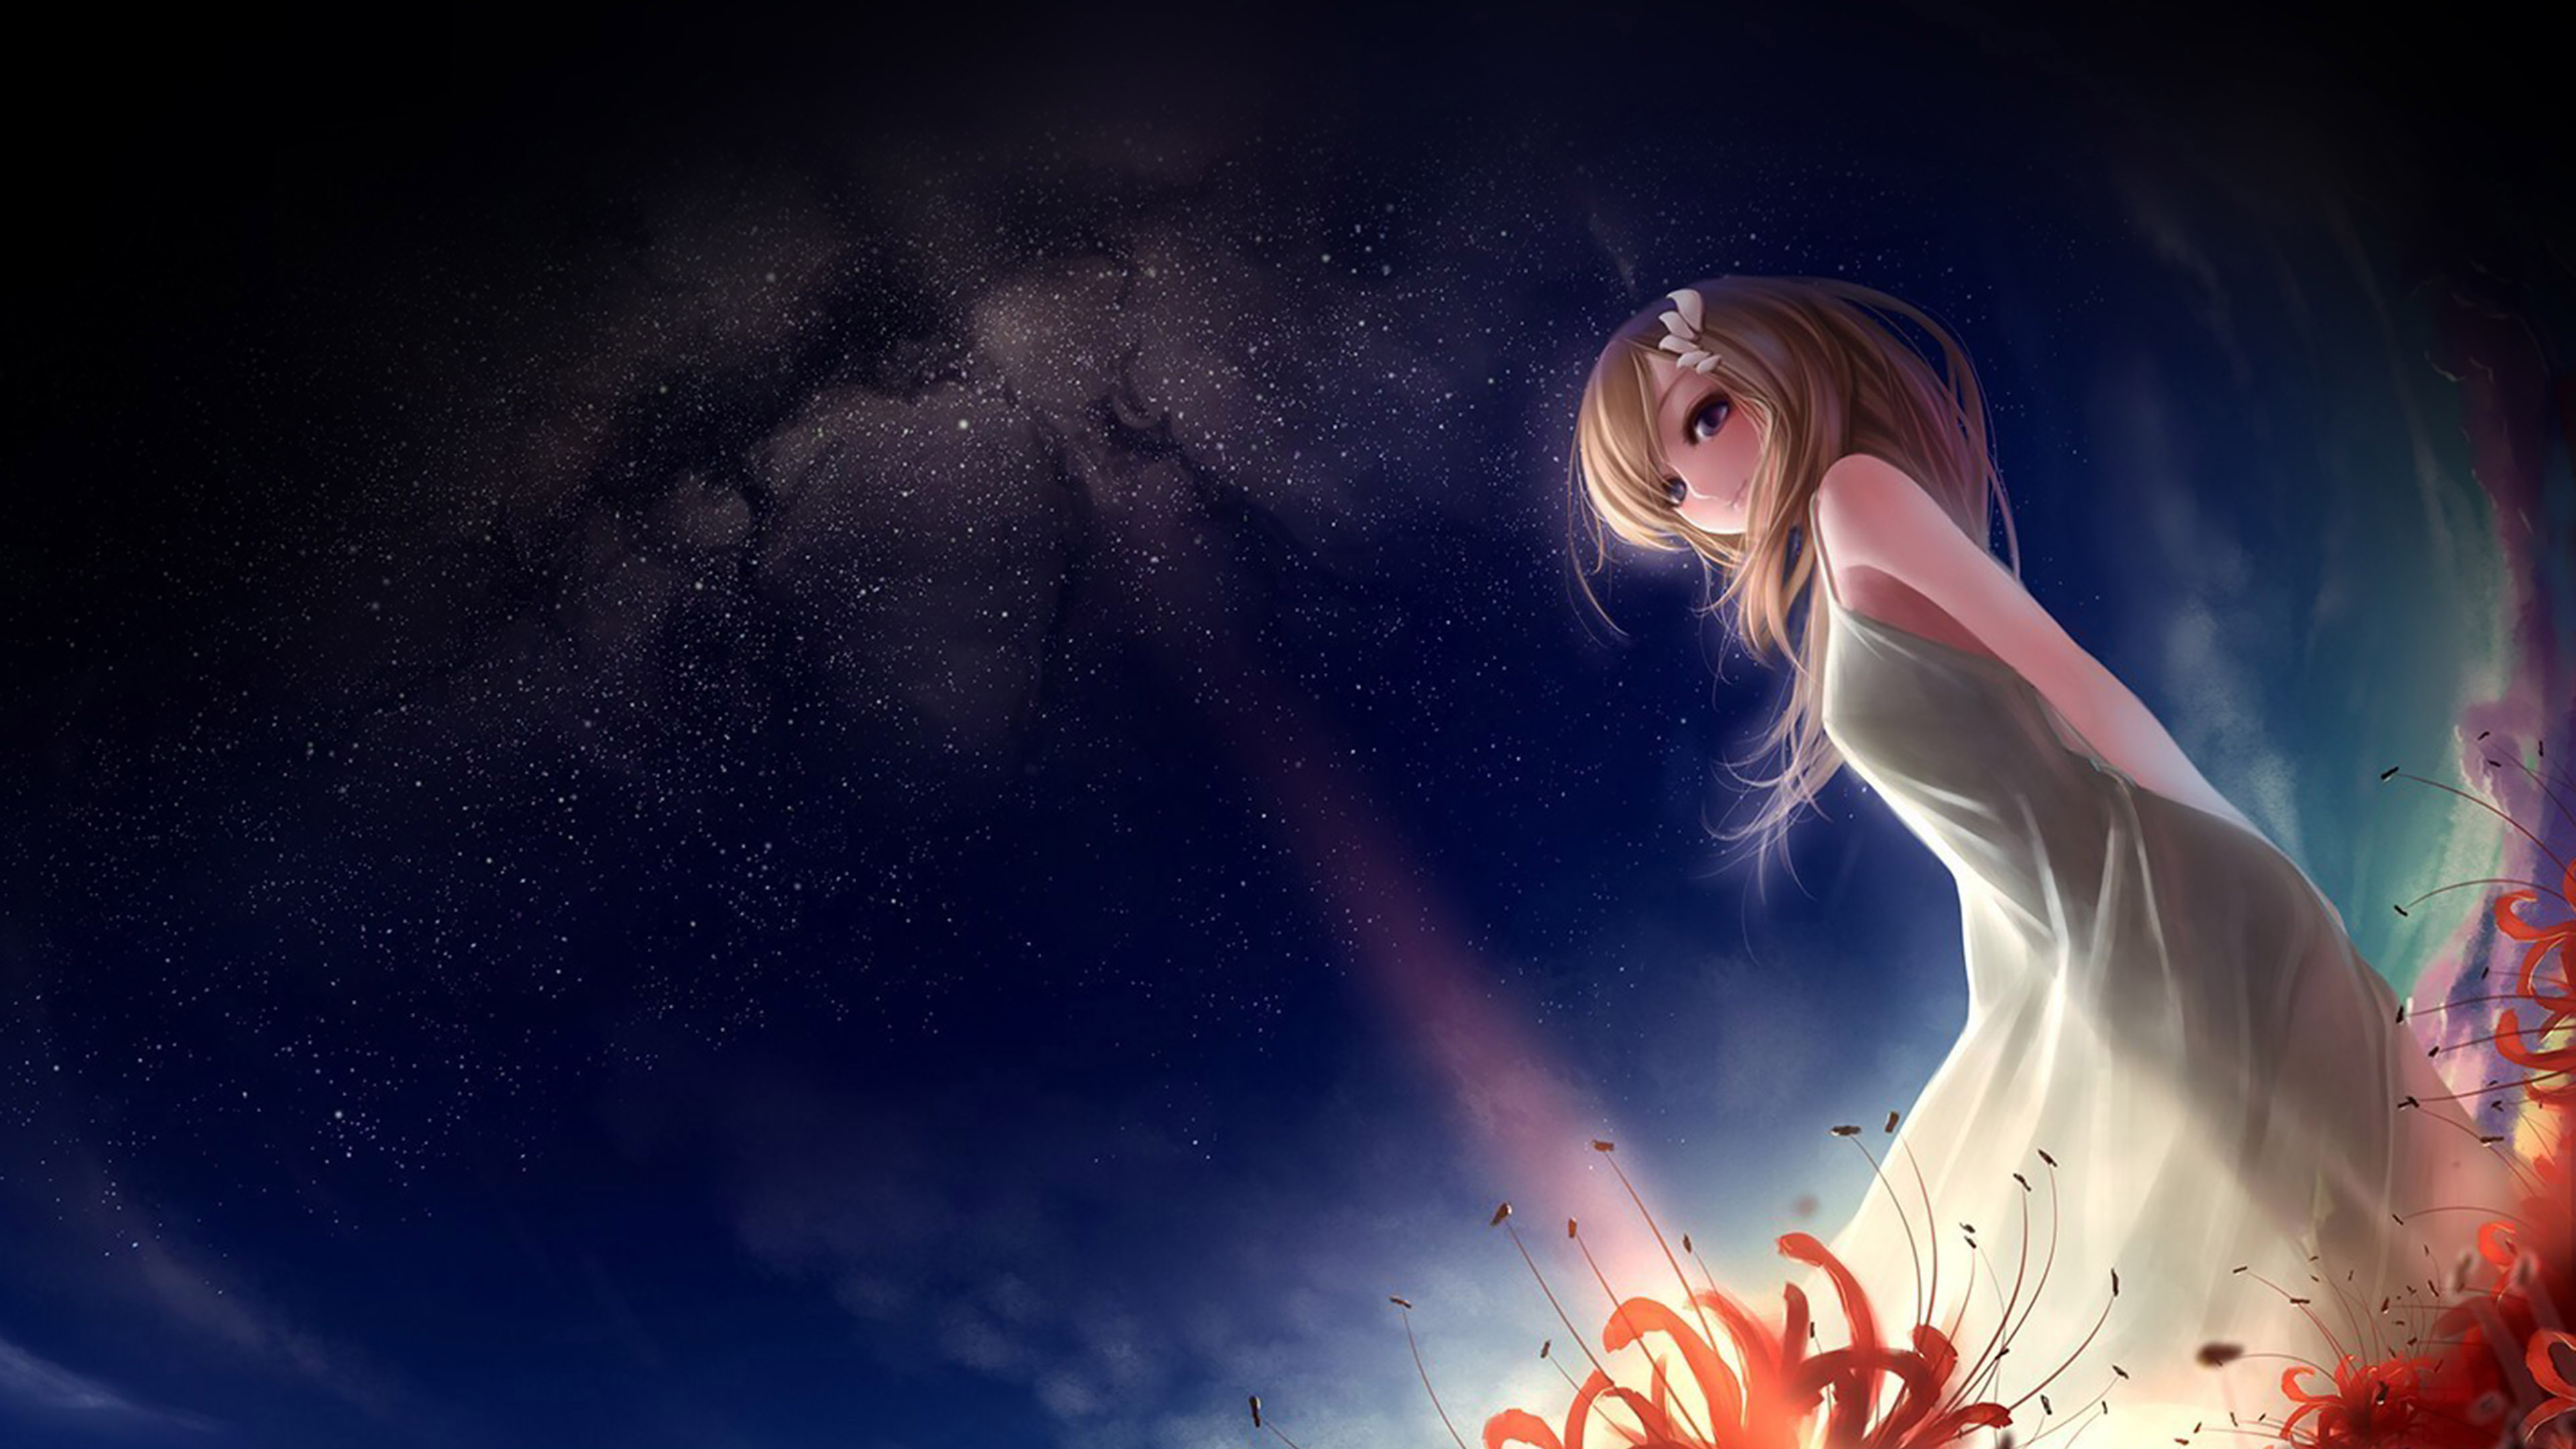 Fall Car Wallpaper Af50 Anime Girl In Space Sky Wallpaper